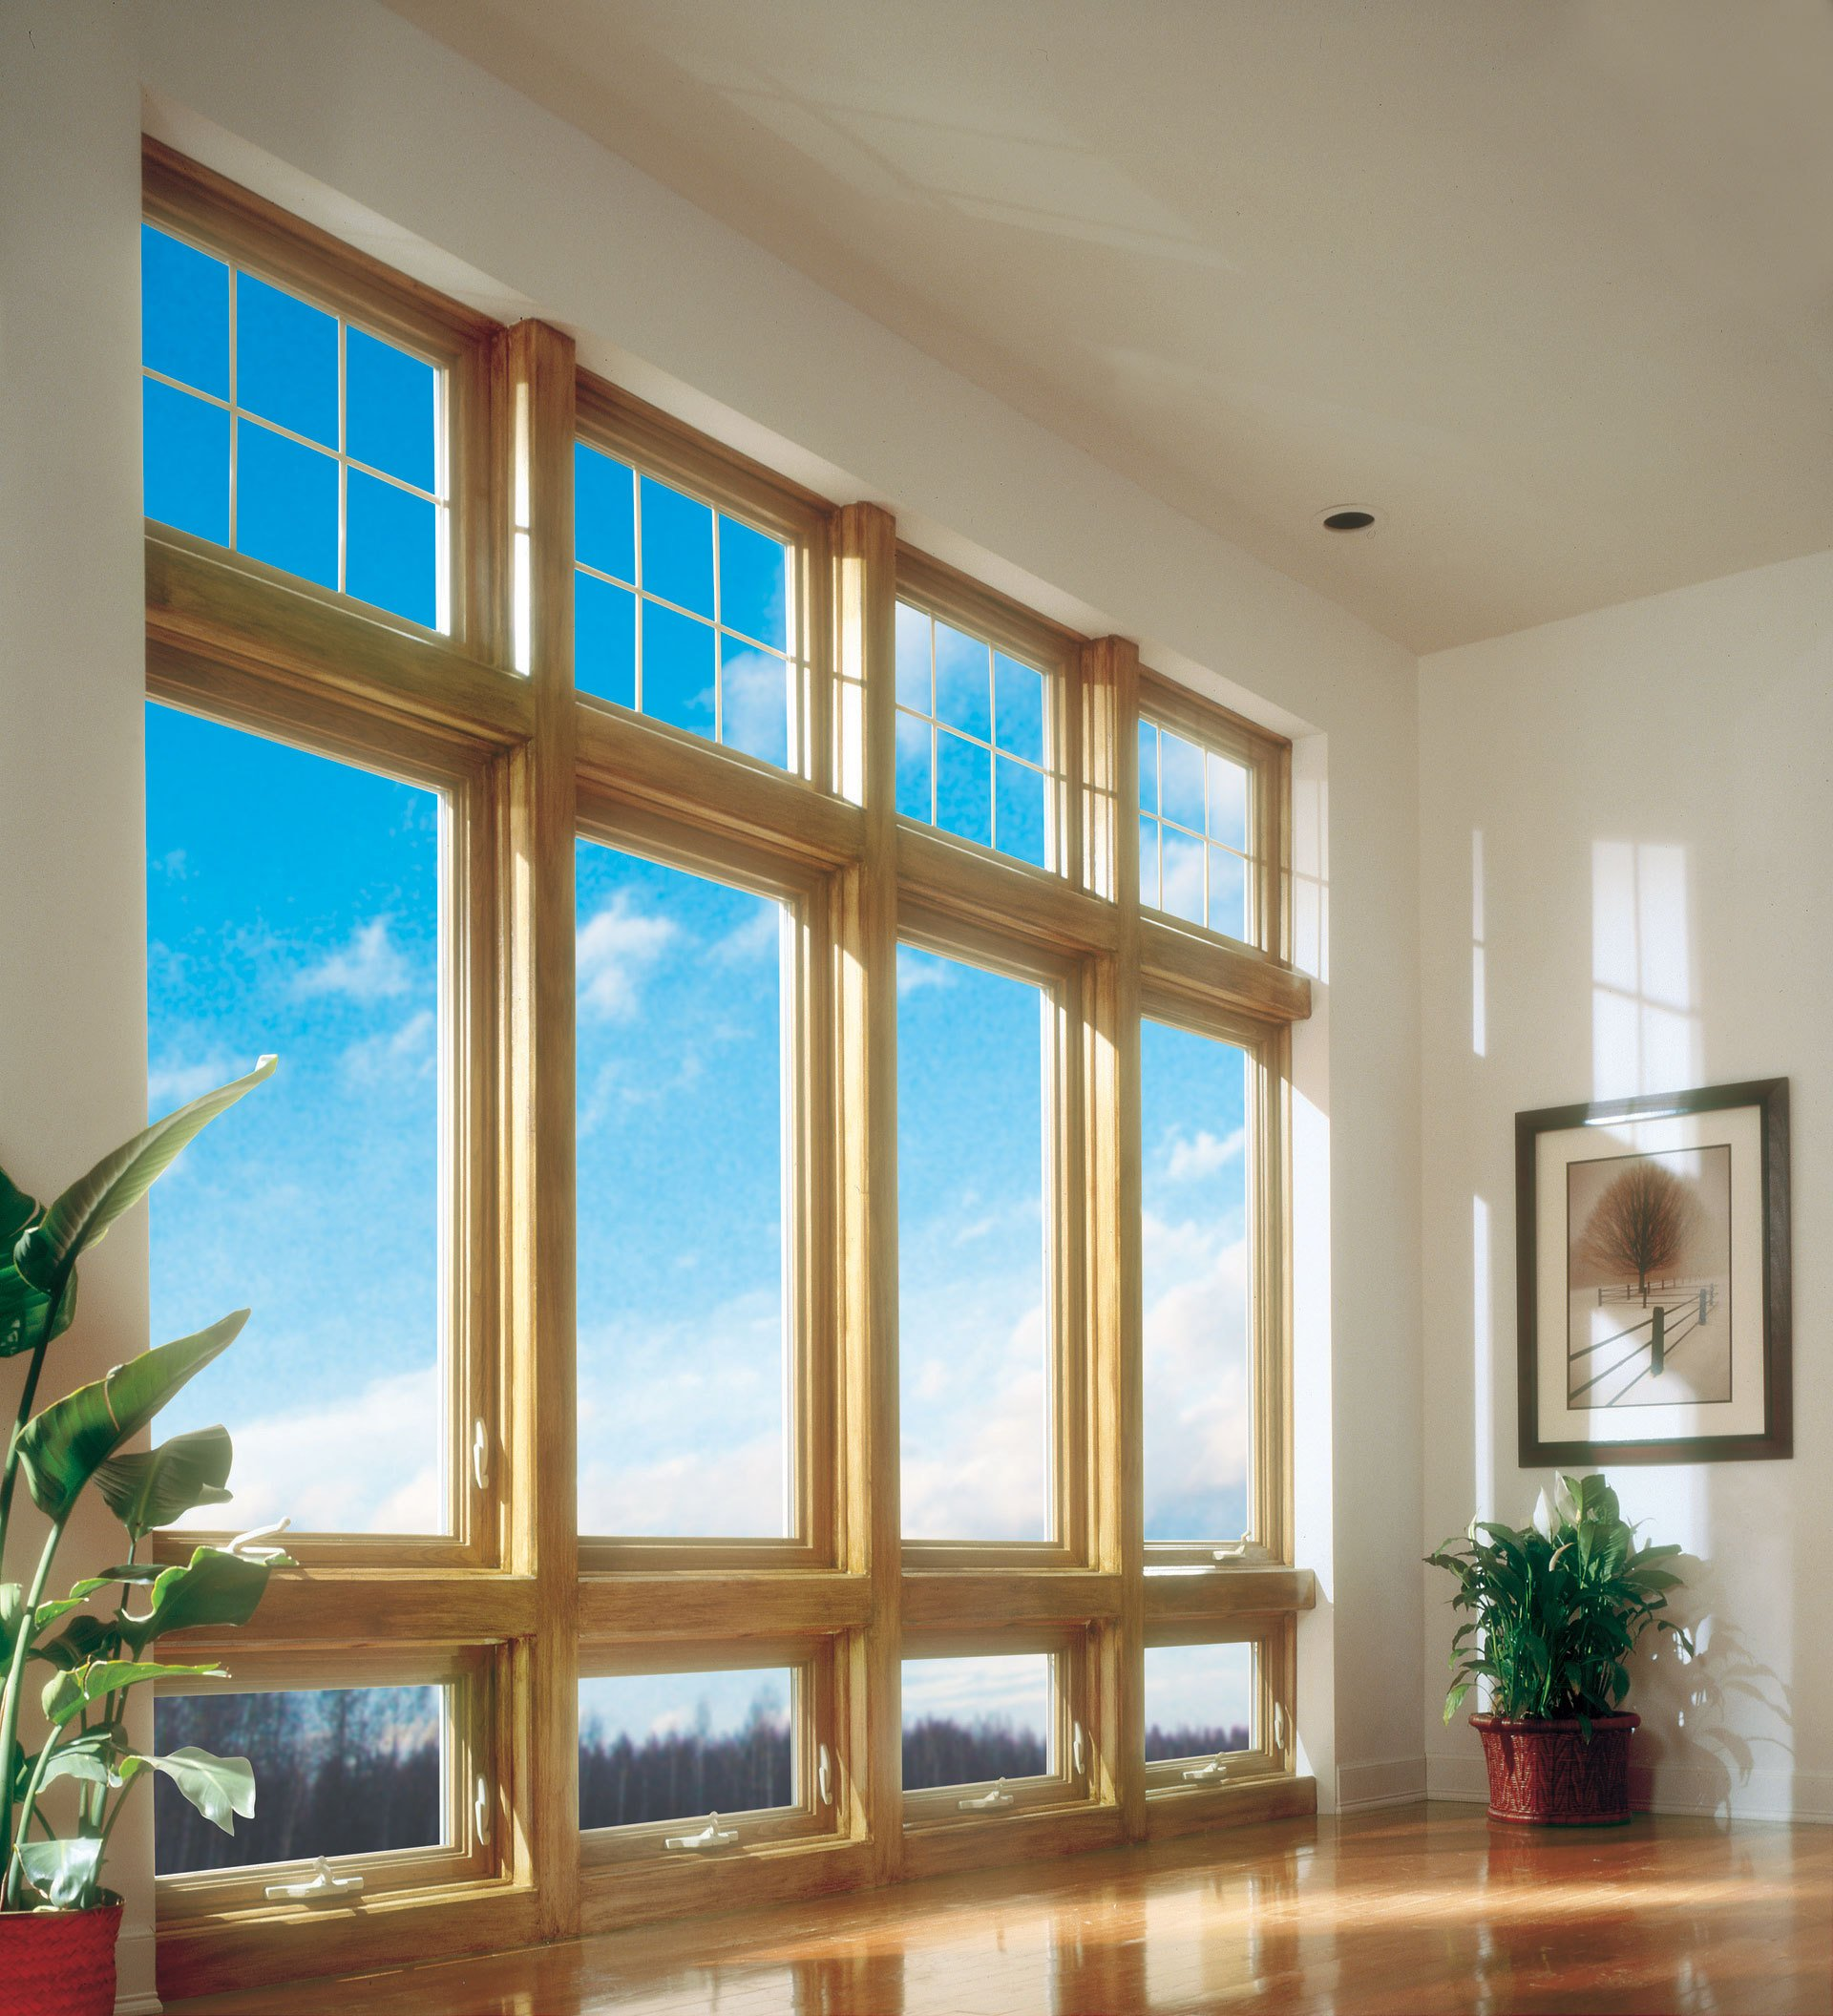 Vinyl replacement windows in cincinnati oh for Top window design